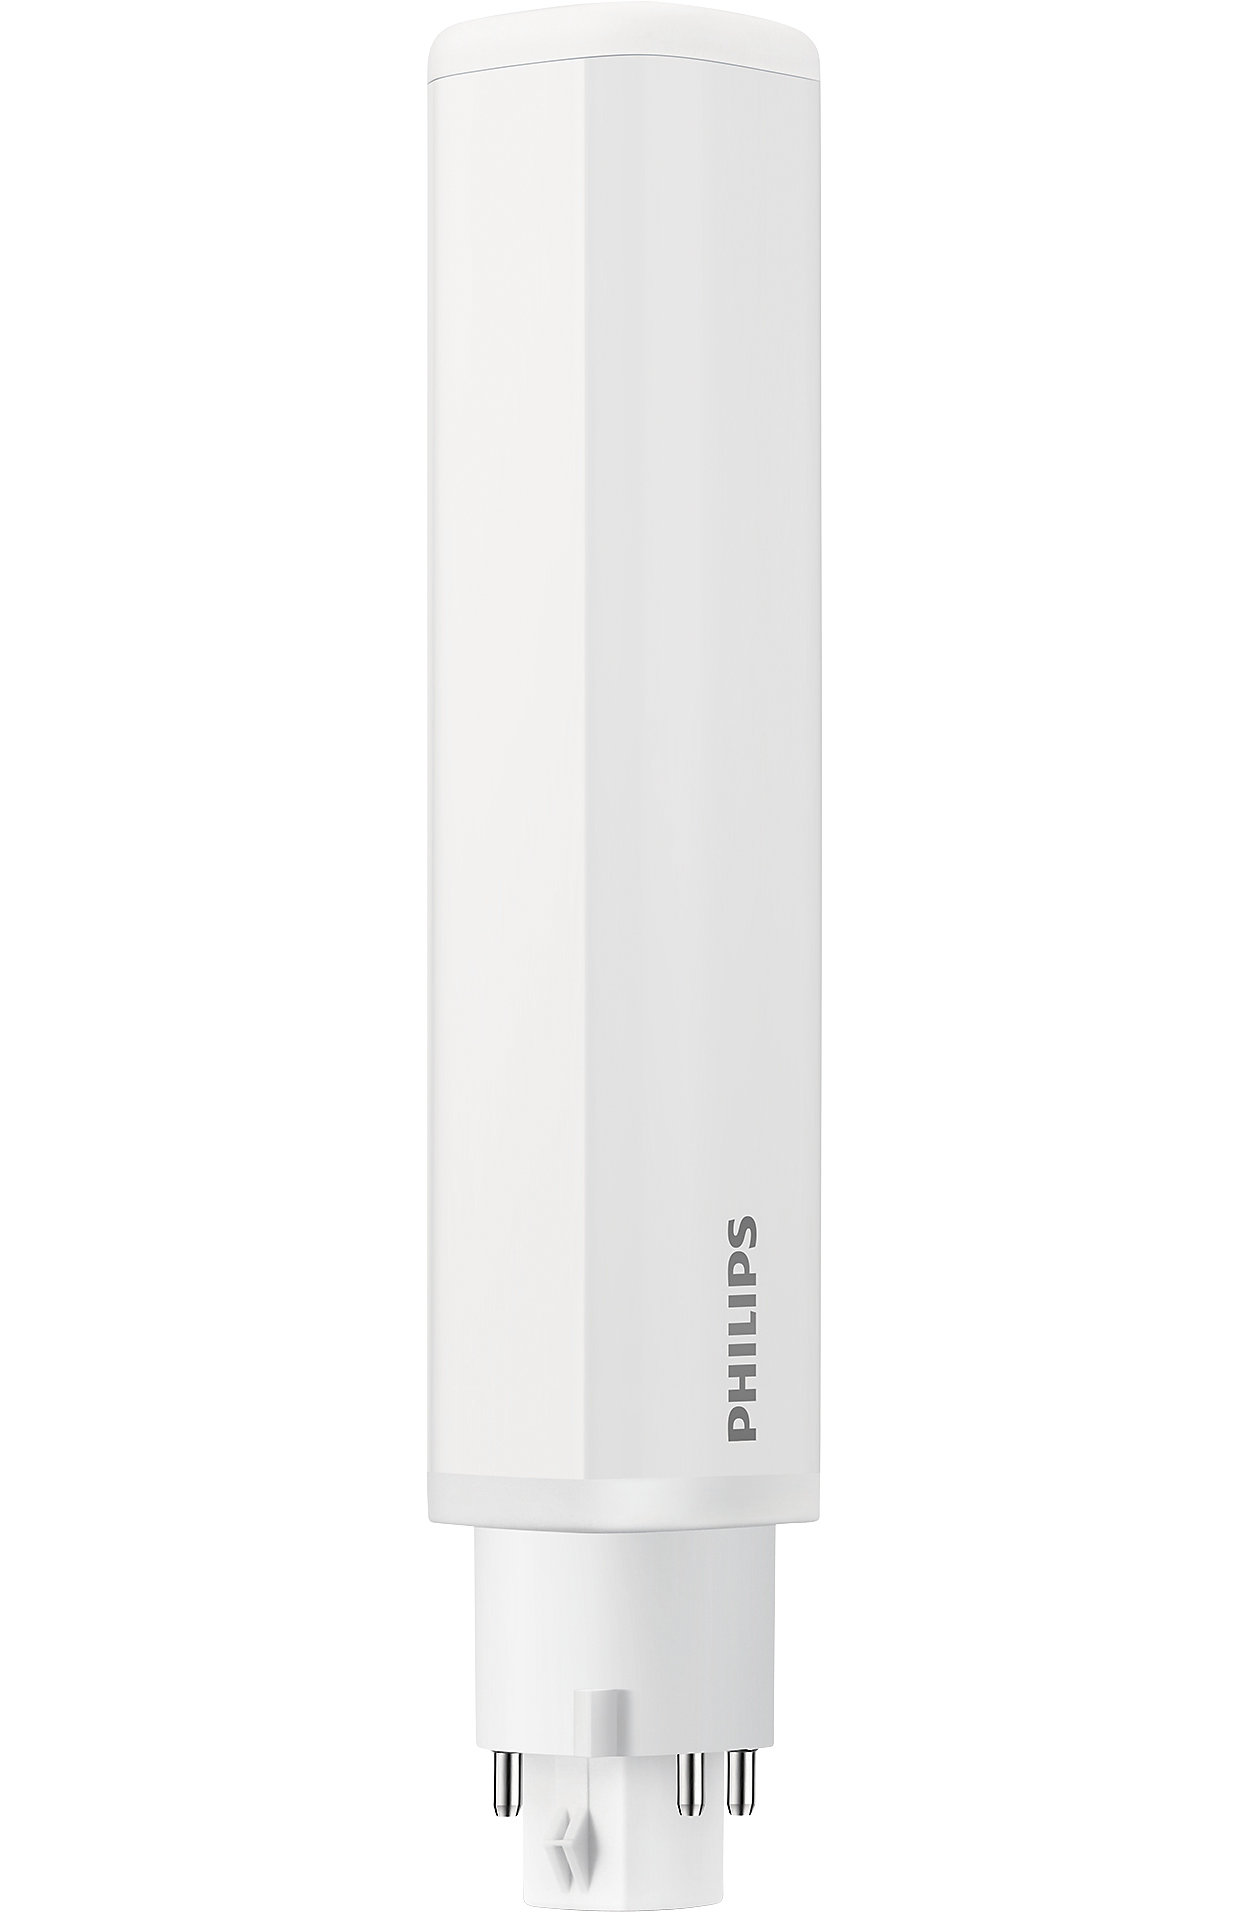 The new generation of energy-saving LED PLC tube lighting